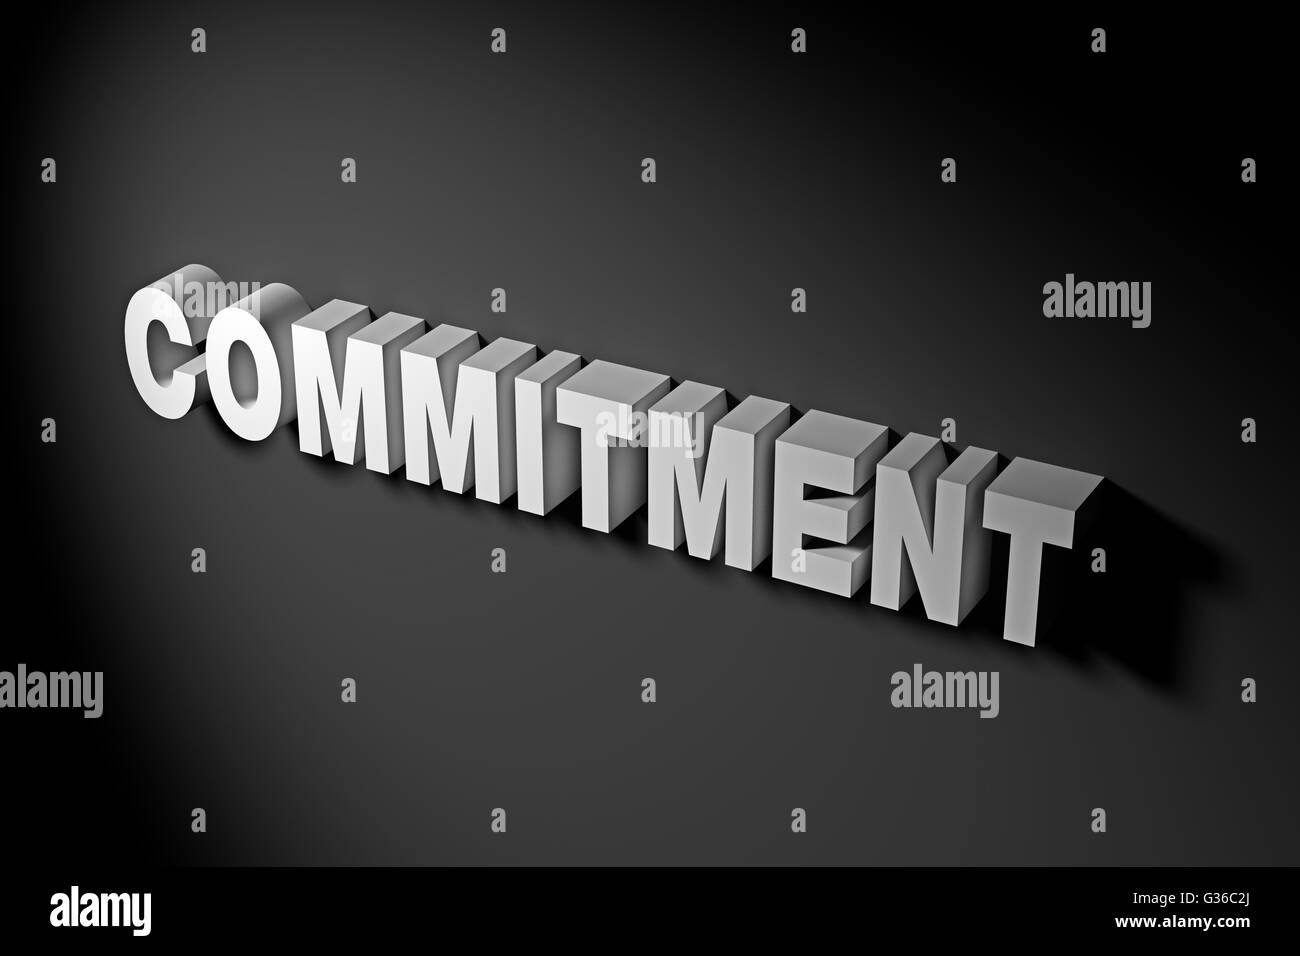 Commitment concept illustrated by 3D rendered texts. - Stock Image